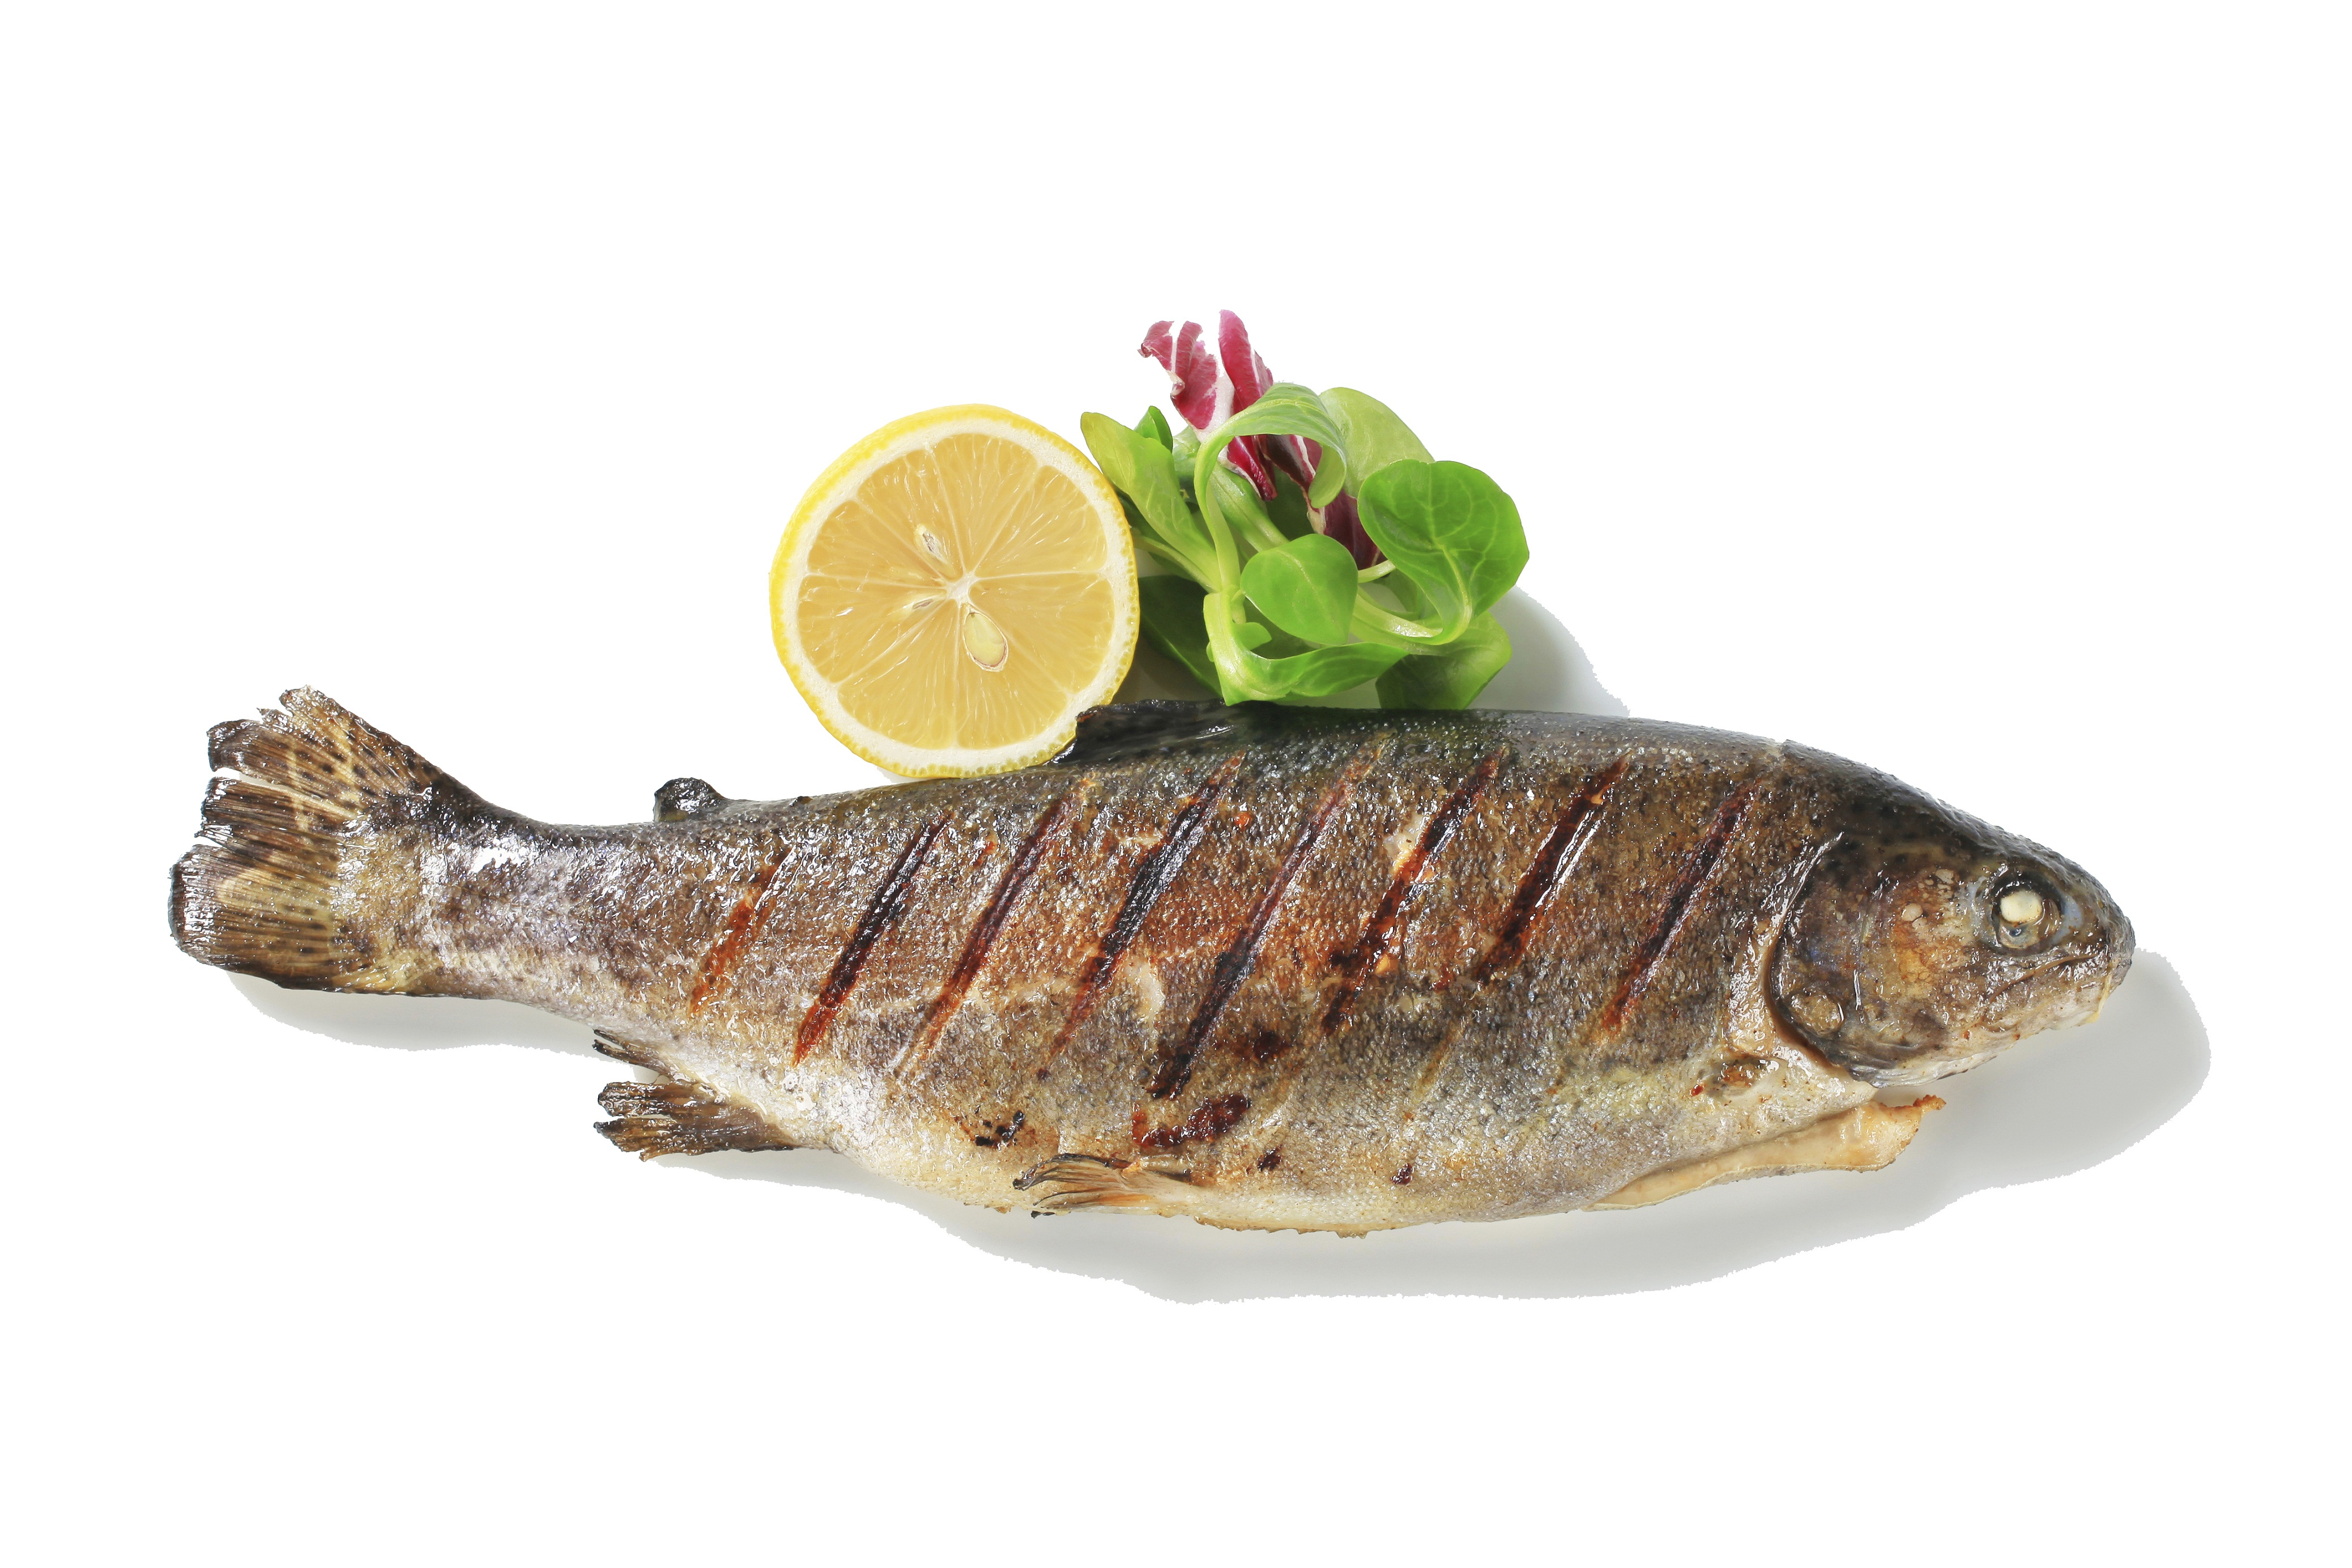 photo of cooked fish